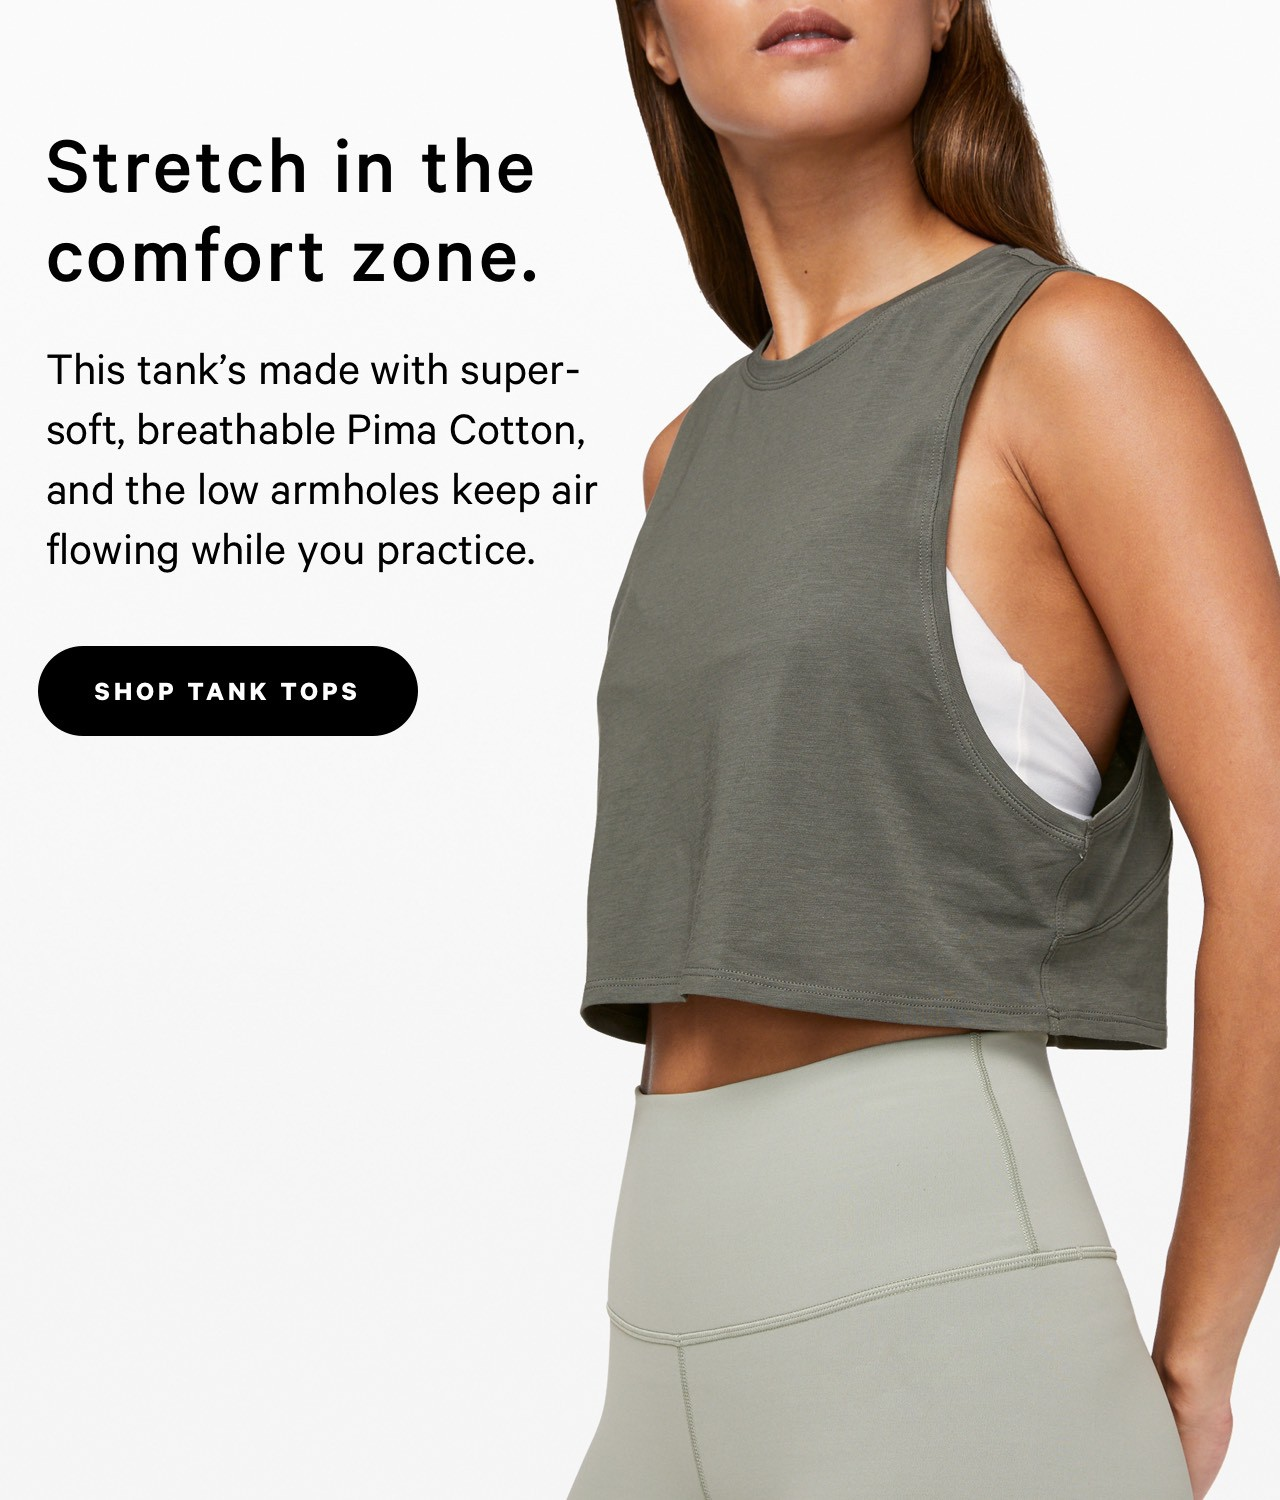 Stretch in the comfort zone. - SHOP TANK TOPS